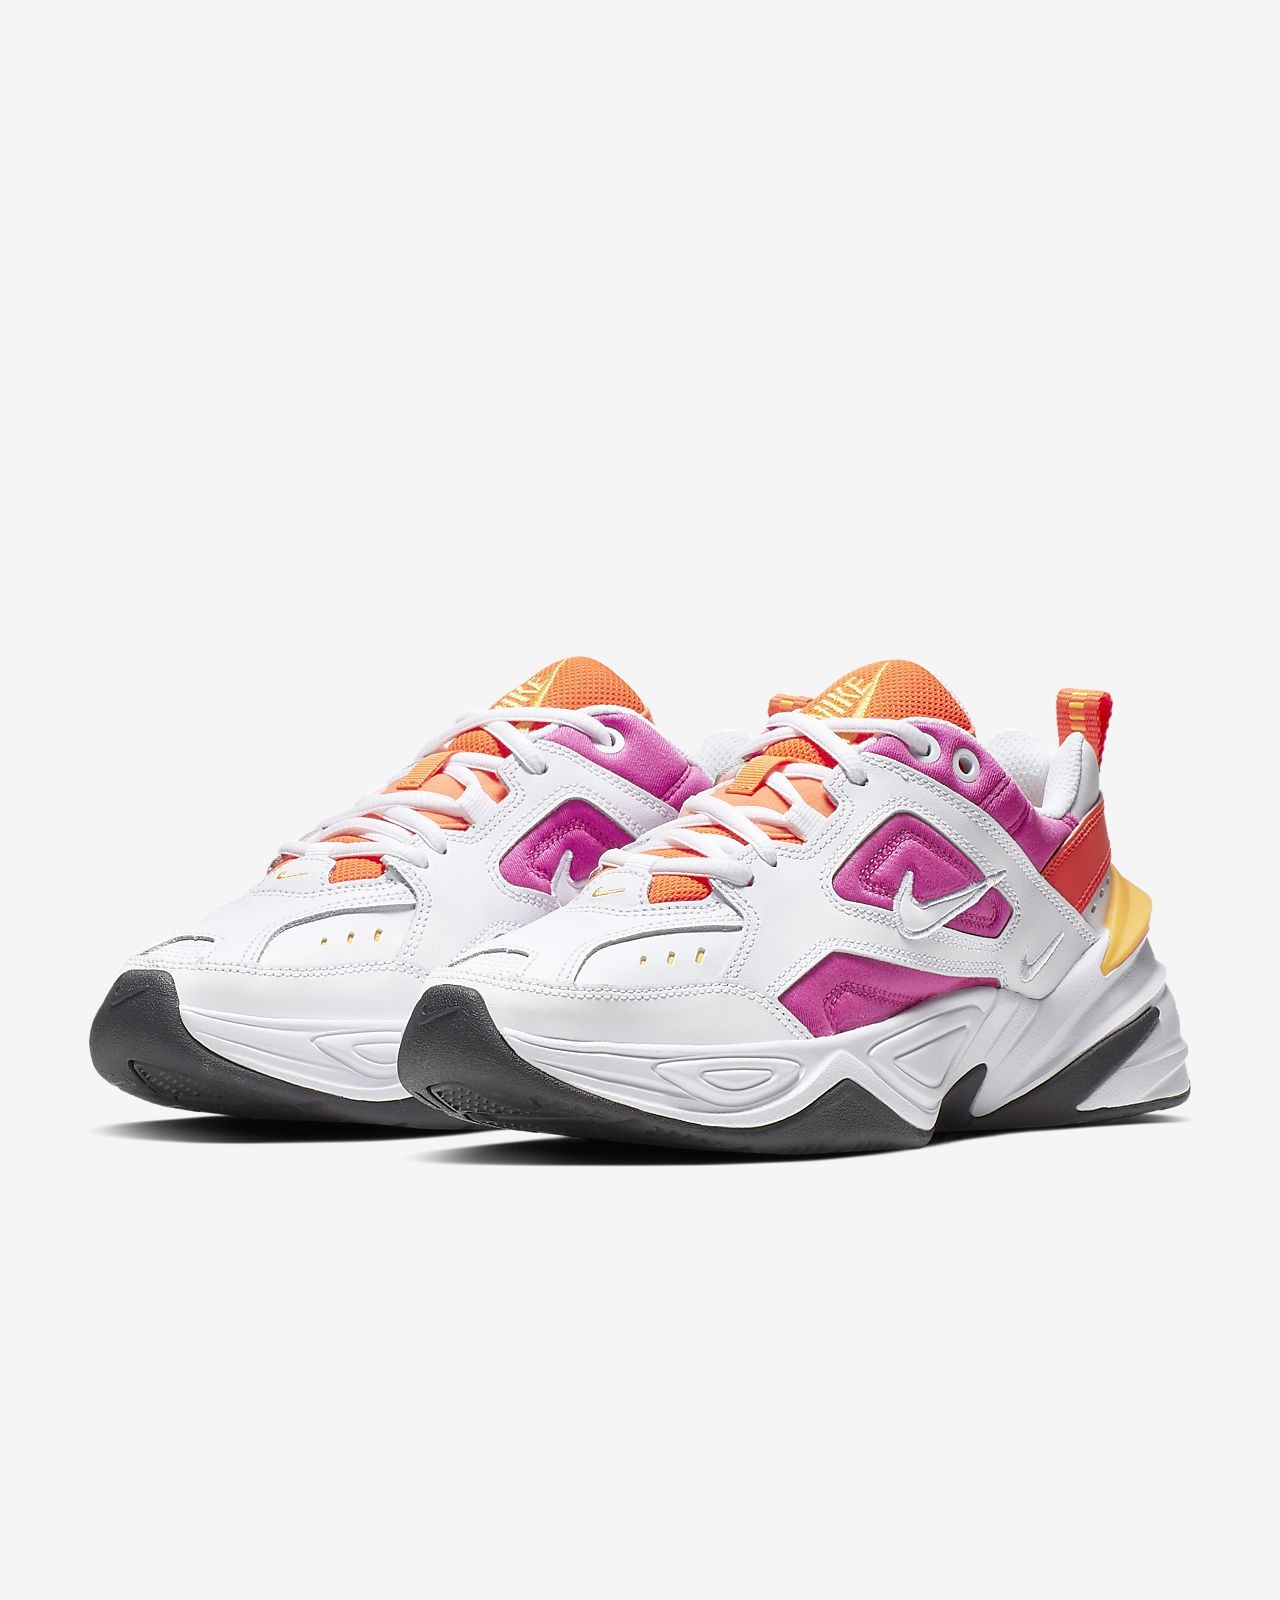 lower price with 1098d 5aad4 Low Resolution Nike M2K Tekno Shoe Nike M2K Tekno Shoe